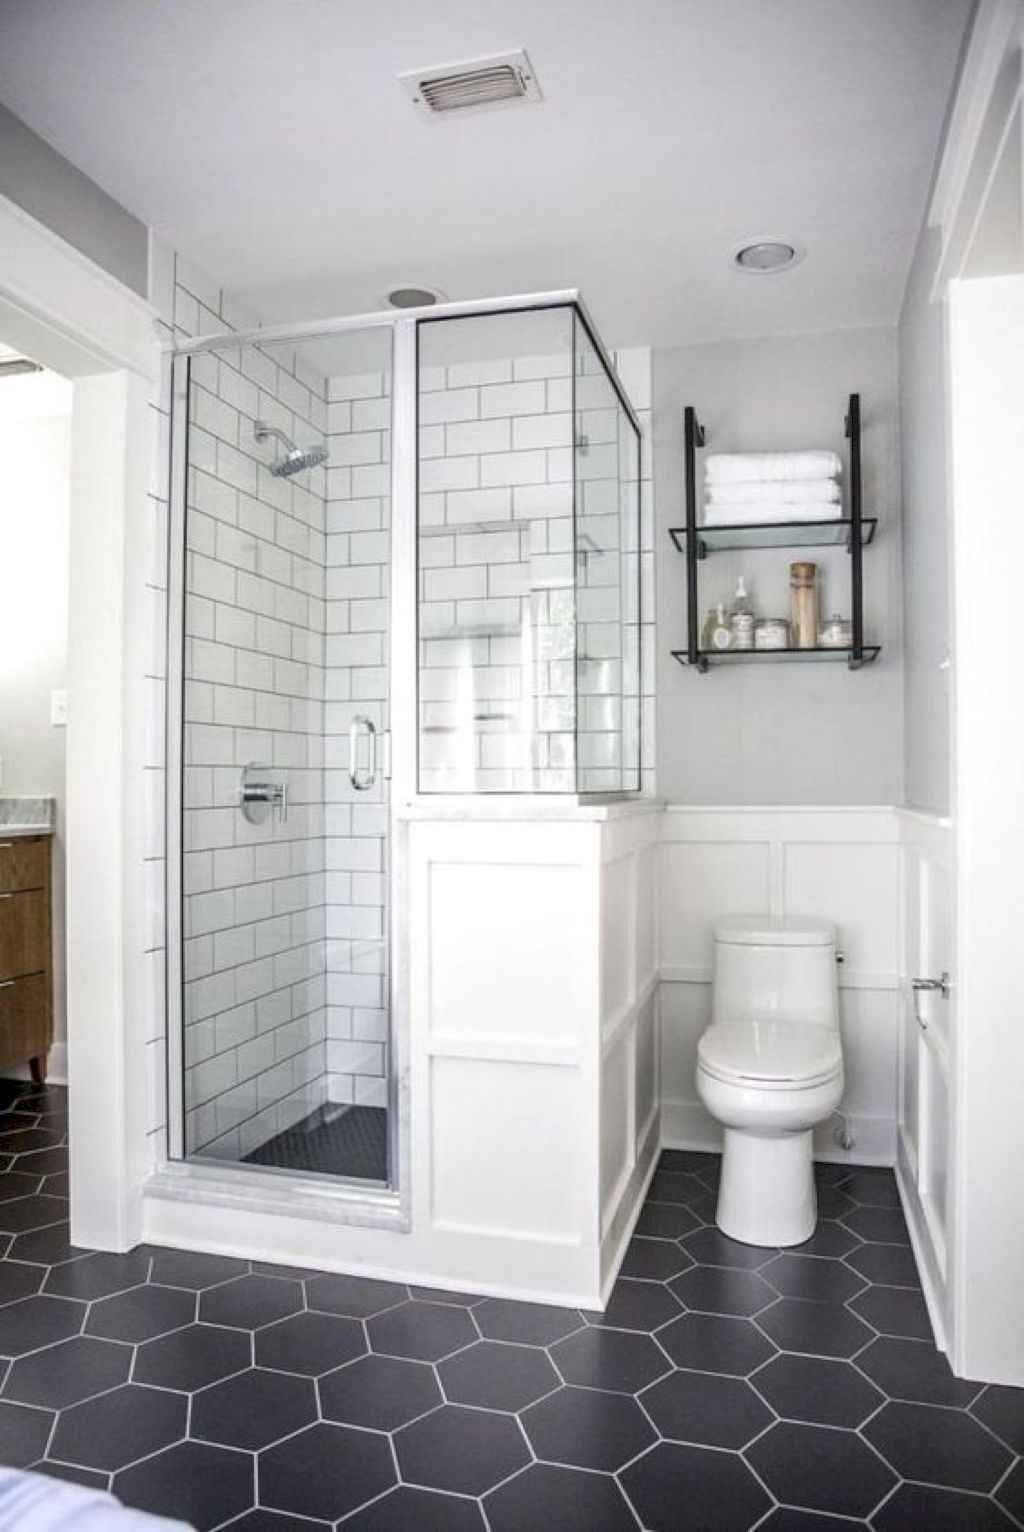 20 Insane Farmhouse Shower Tiles Remodel Ideas With Images Small Master Bathroom Small Bathroom Remodel Designs Farmhouse Shower